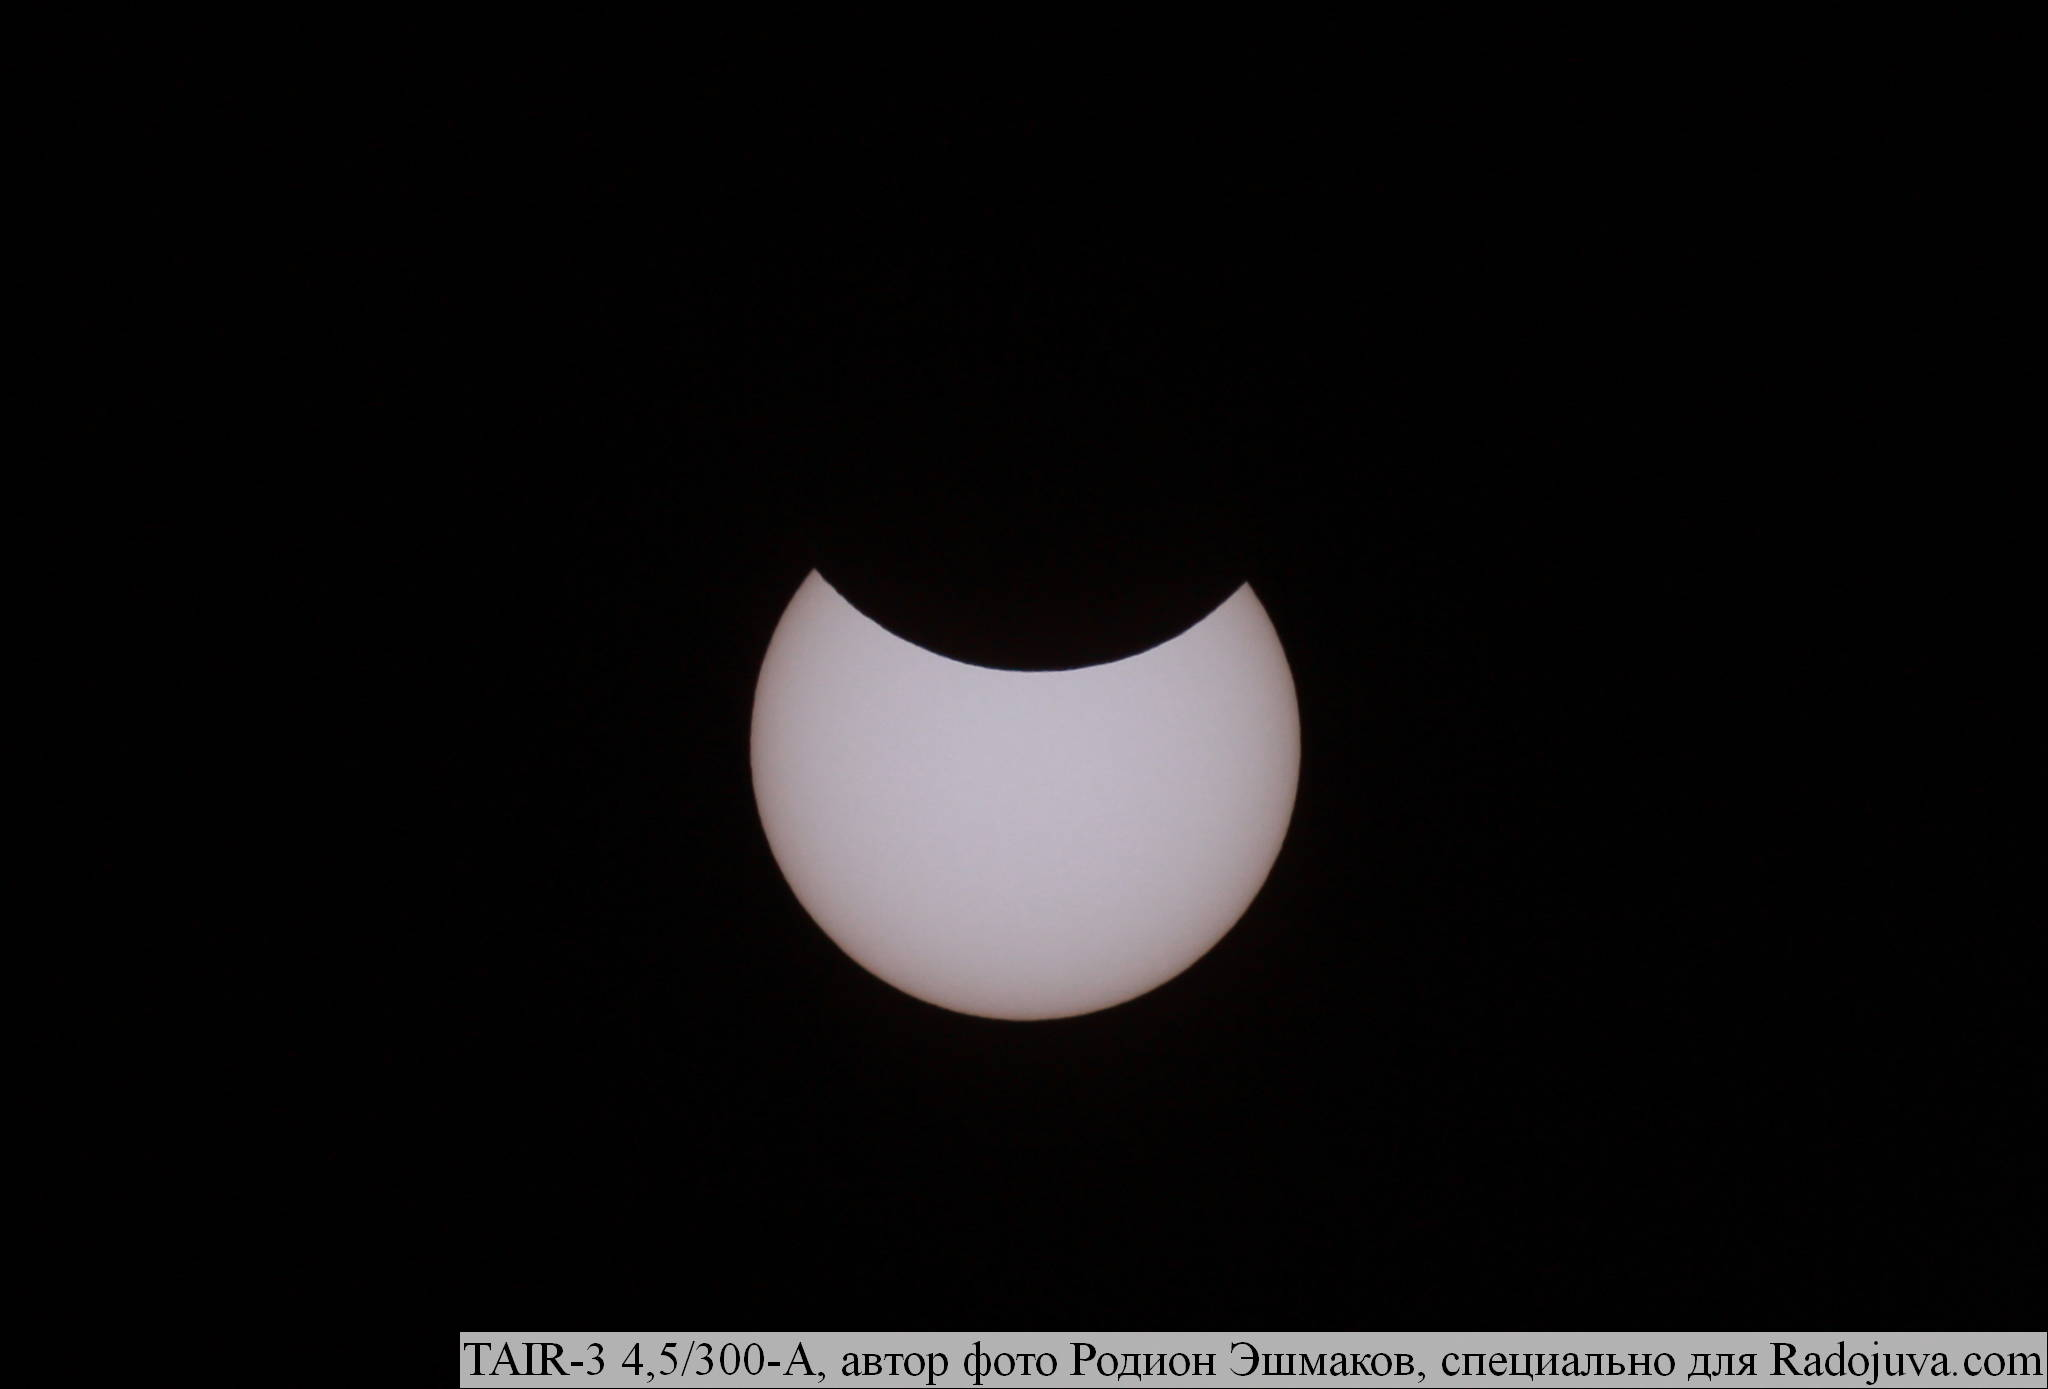 Solar eclipse at Tair-3A, crop, F / 8, visual solar filter.